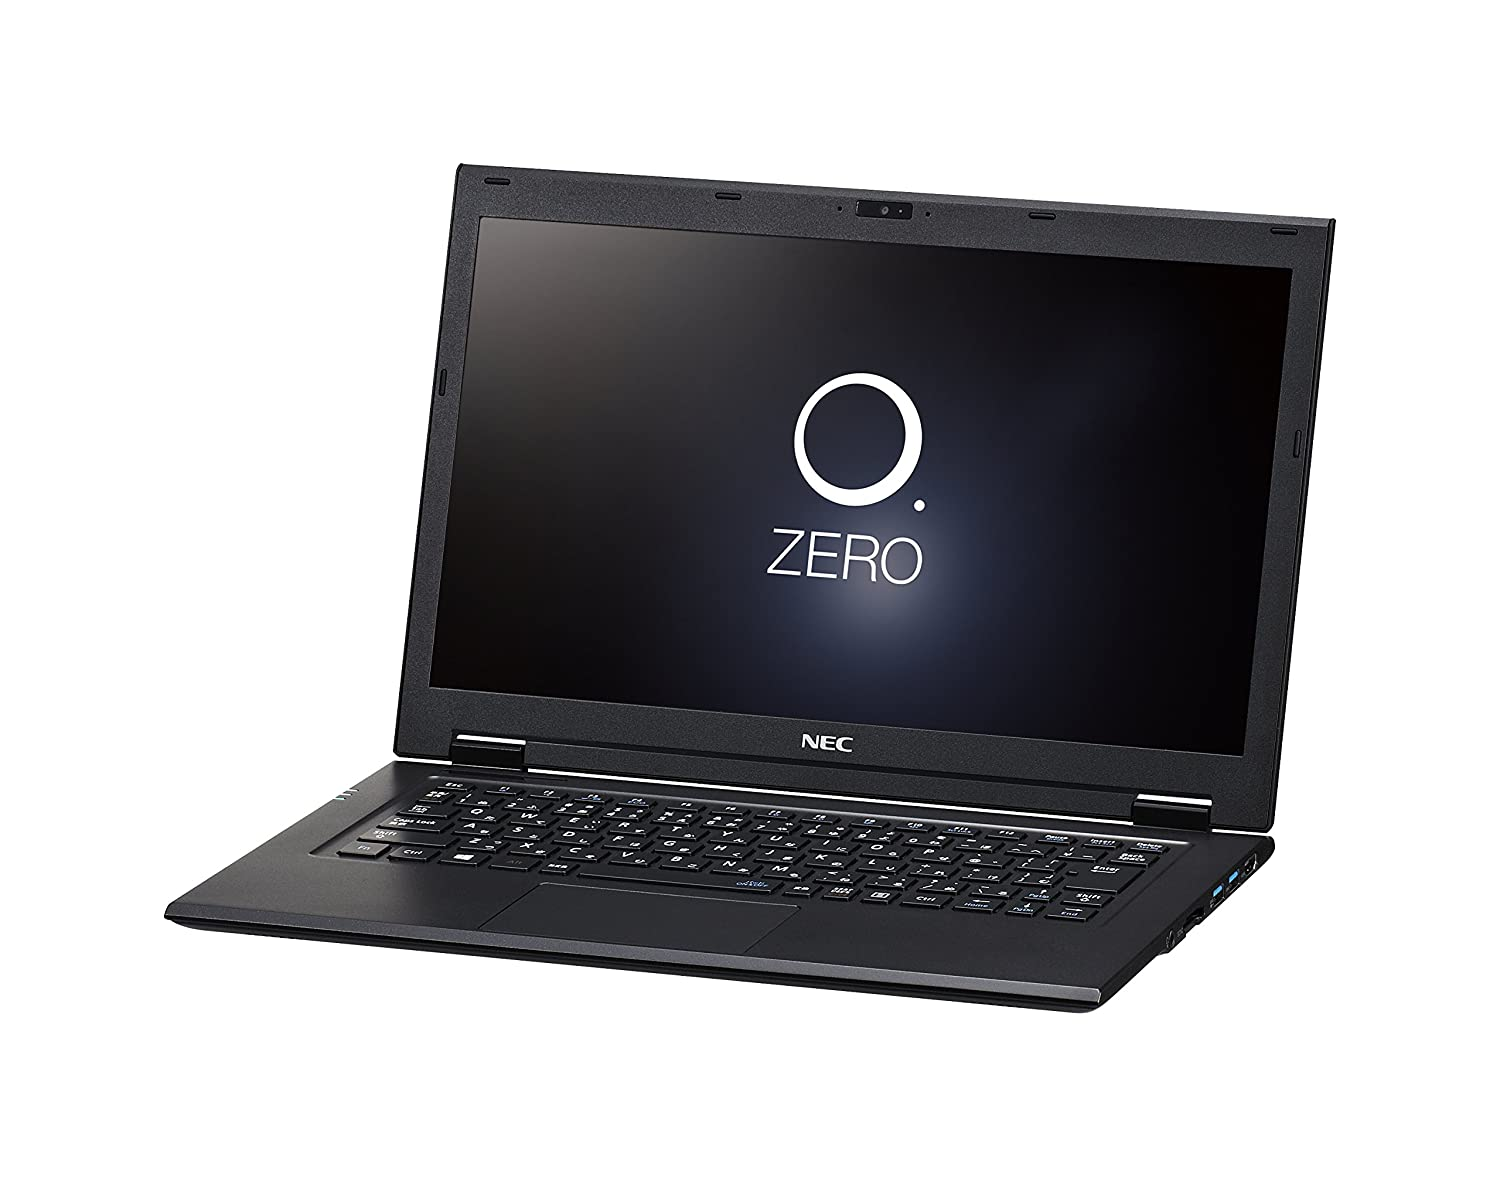 【即発送可能】 NEC PC-HZ550FAB LAVIE Hybrid NEC ZERO LAVIE PC-HZ550FAB B01M0RG0IN, 香々地町:0eb2d106 --- ballyshannonshow.com